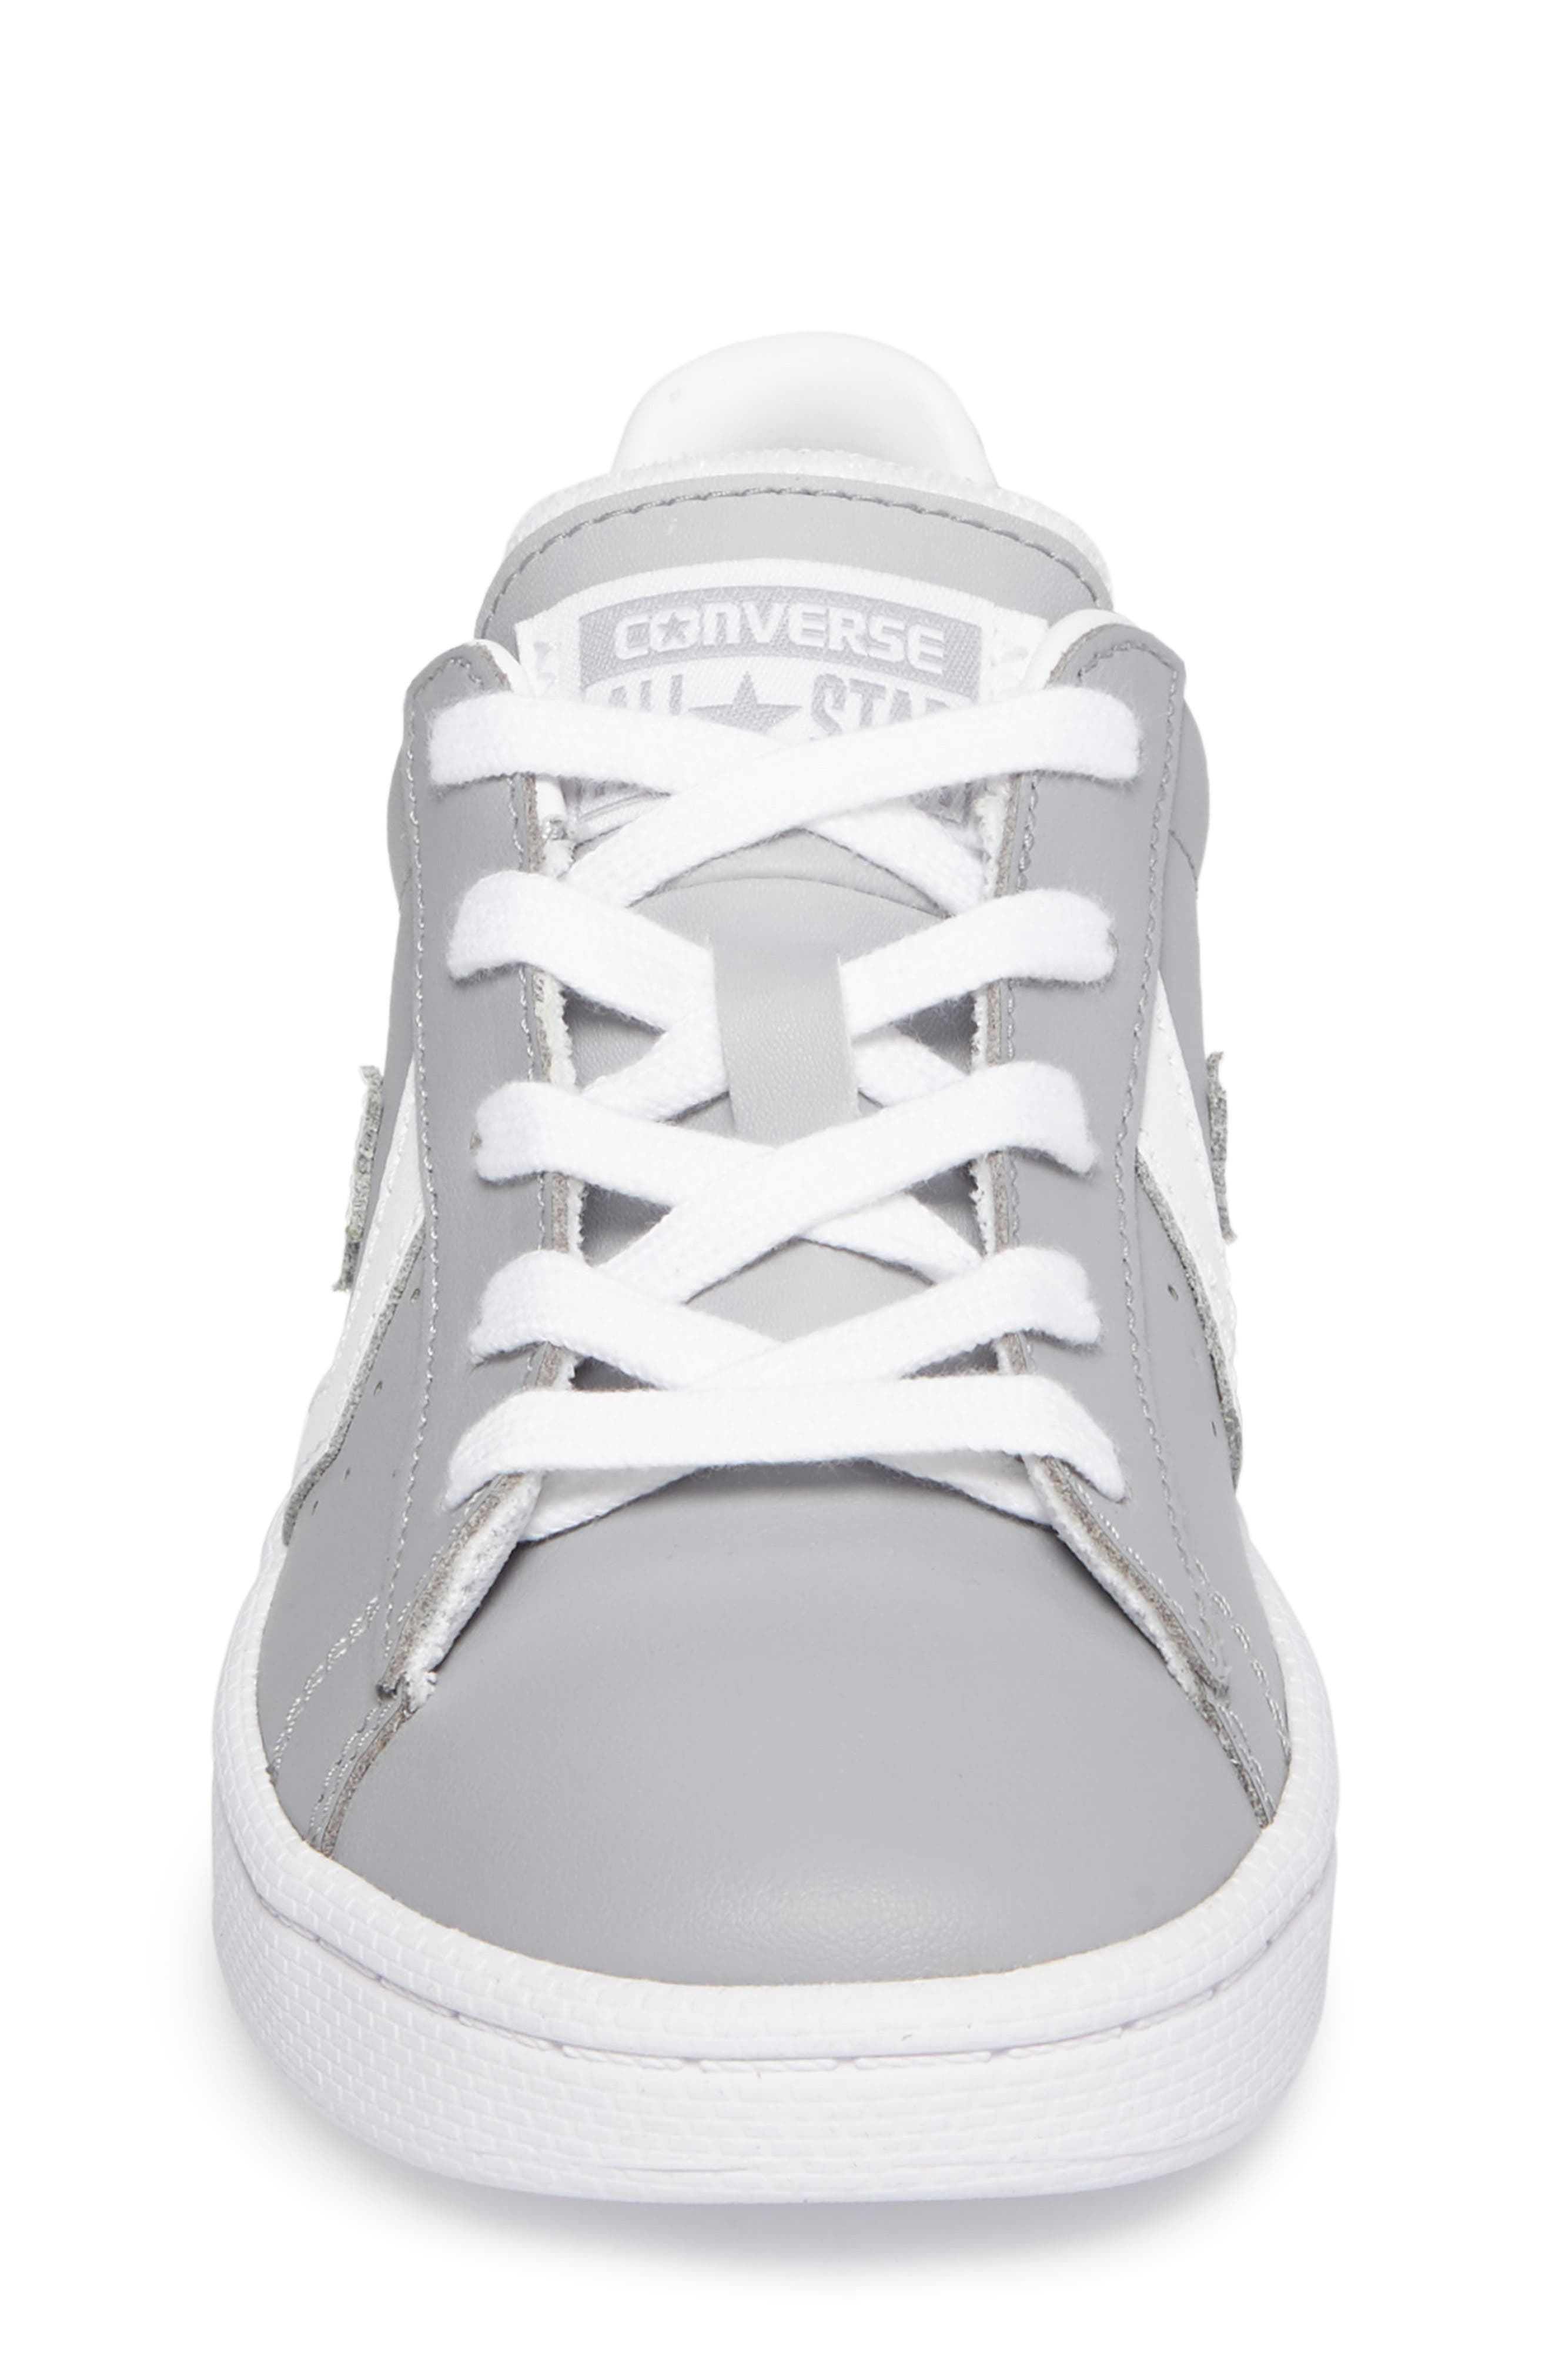 All Star<sup>®</sup> Pro Leather Low Top Sneaker,                             Alternate thumbnail 4, color,                             097